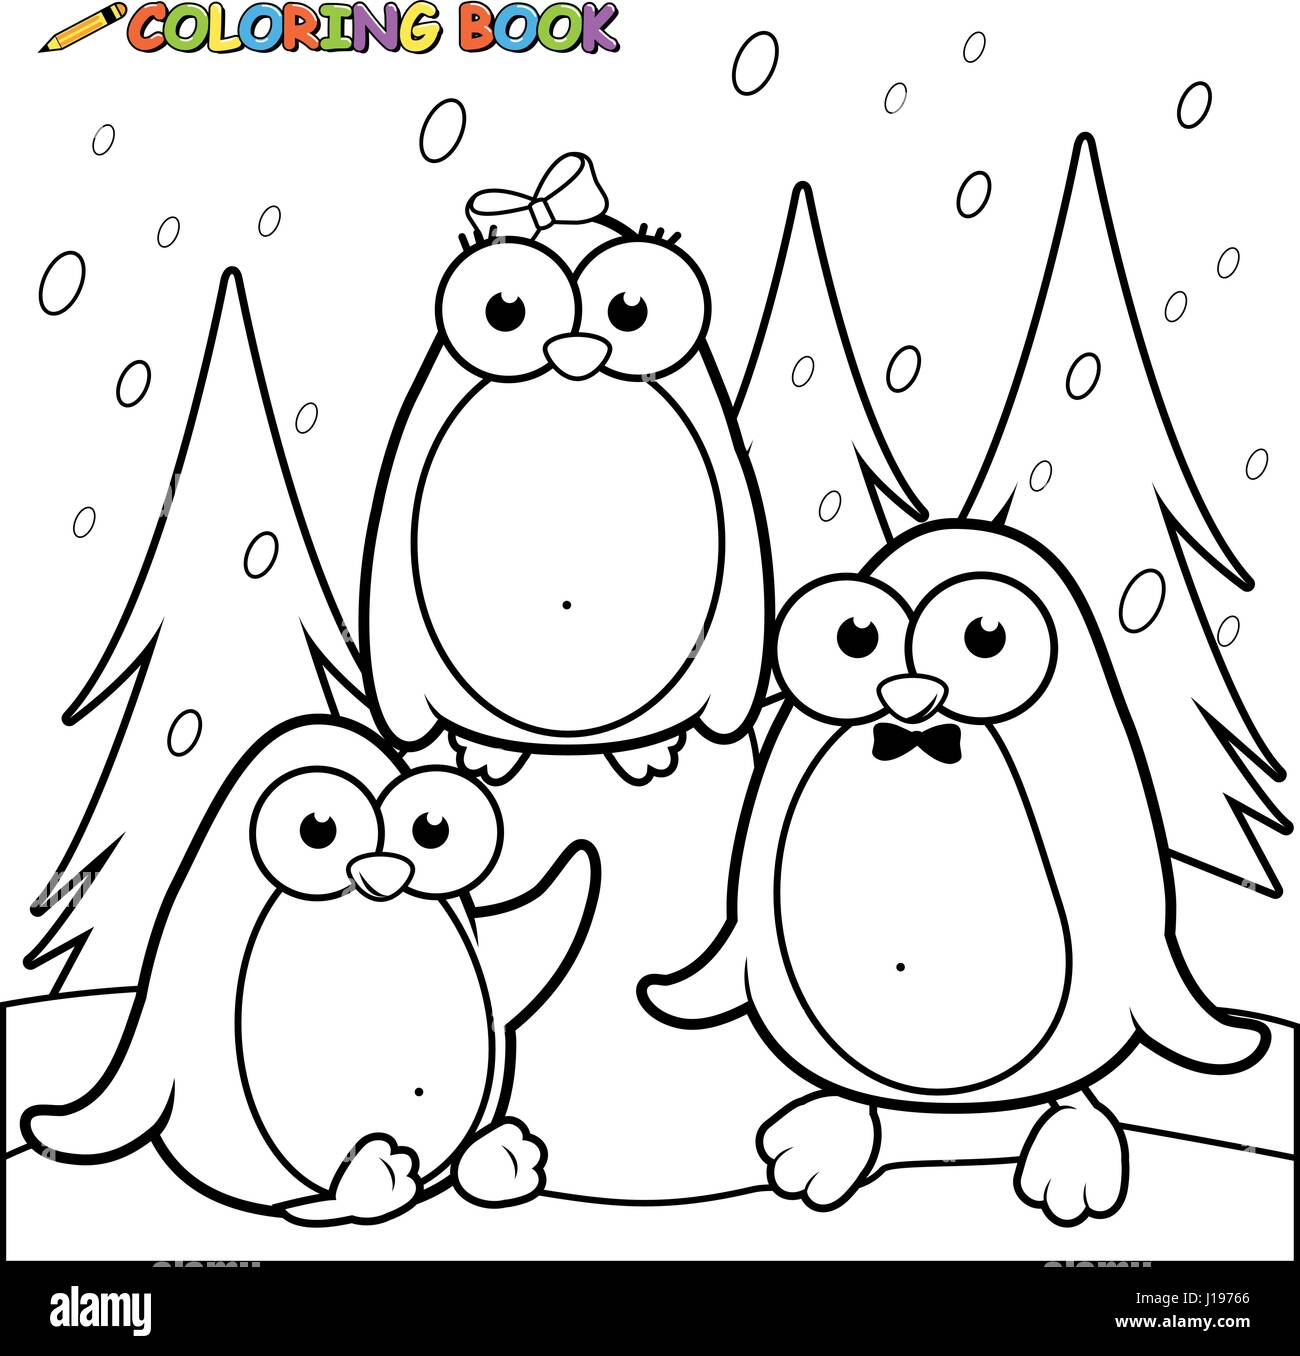 snowy landscape with penguins on ice black and white coloring